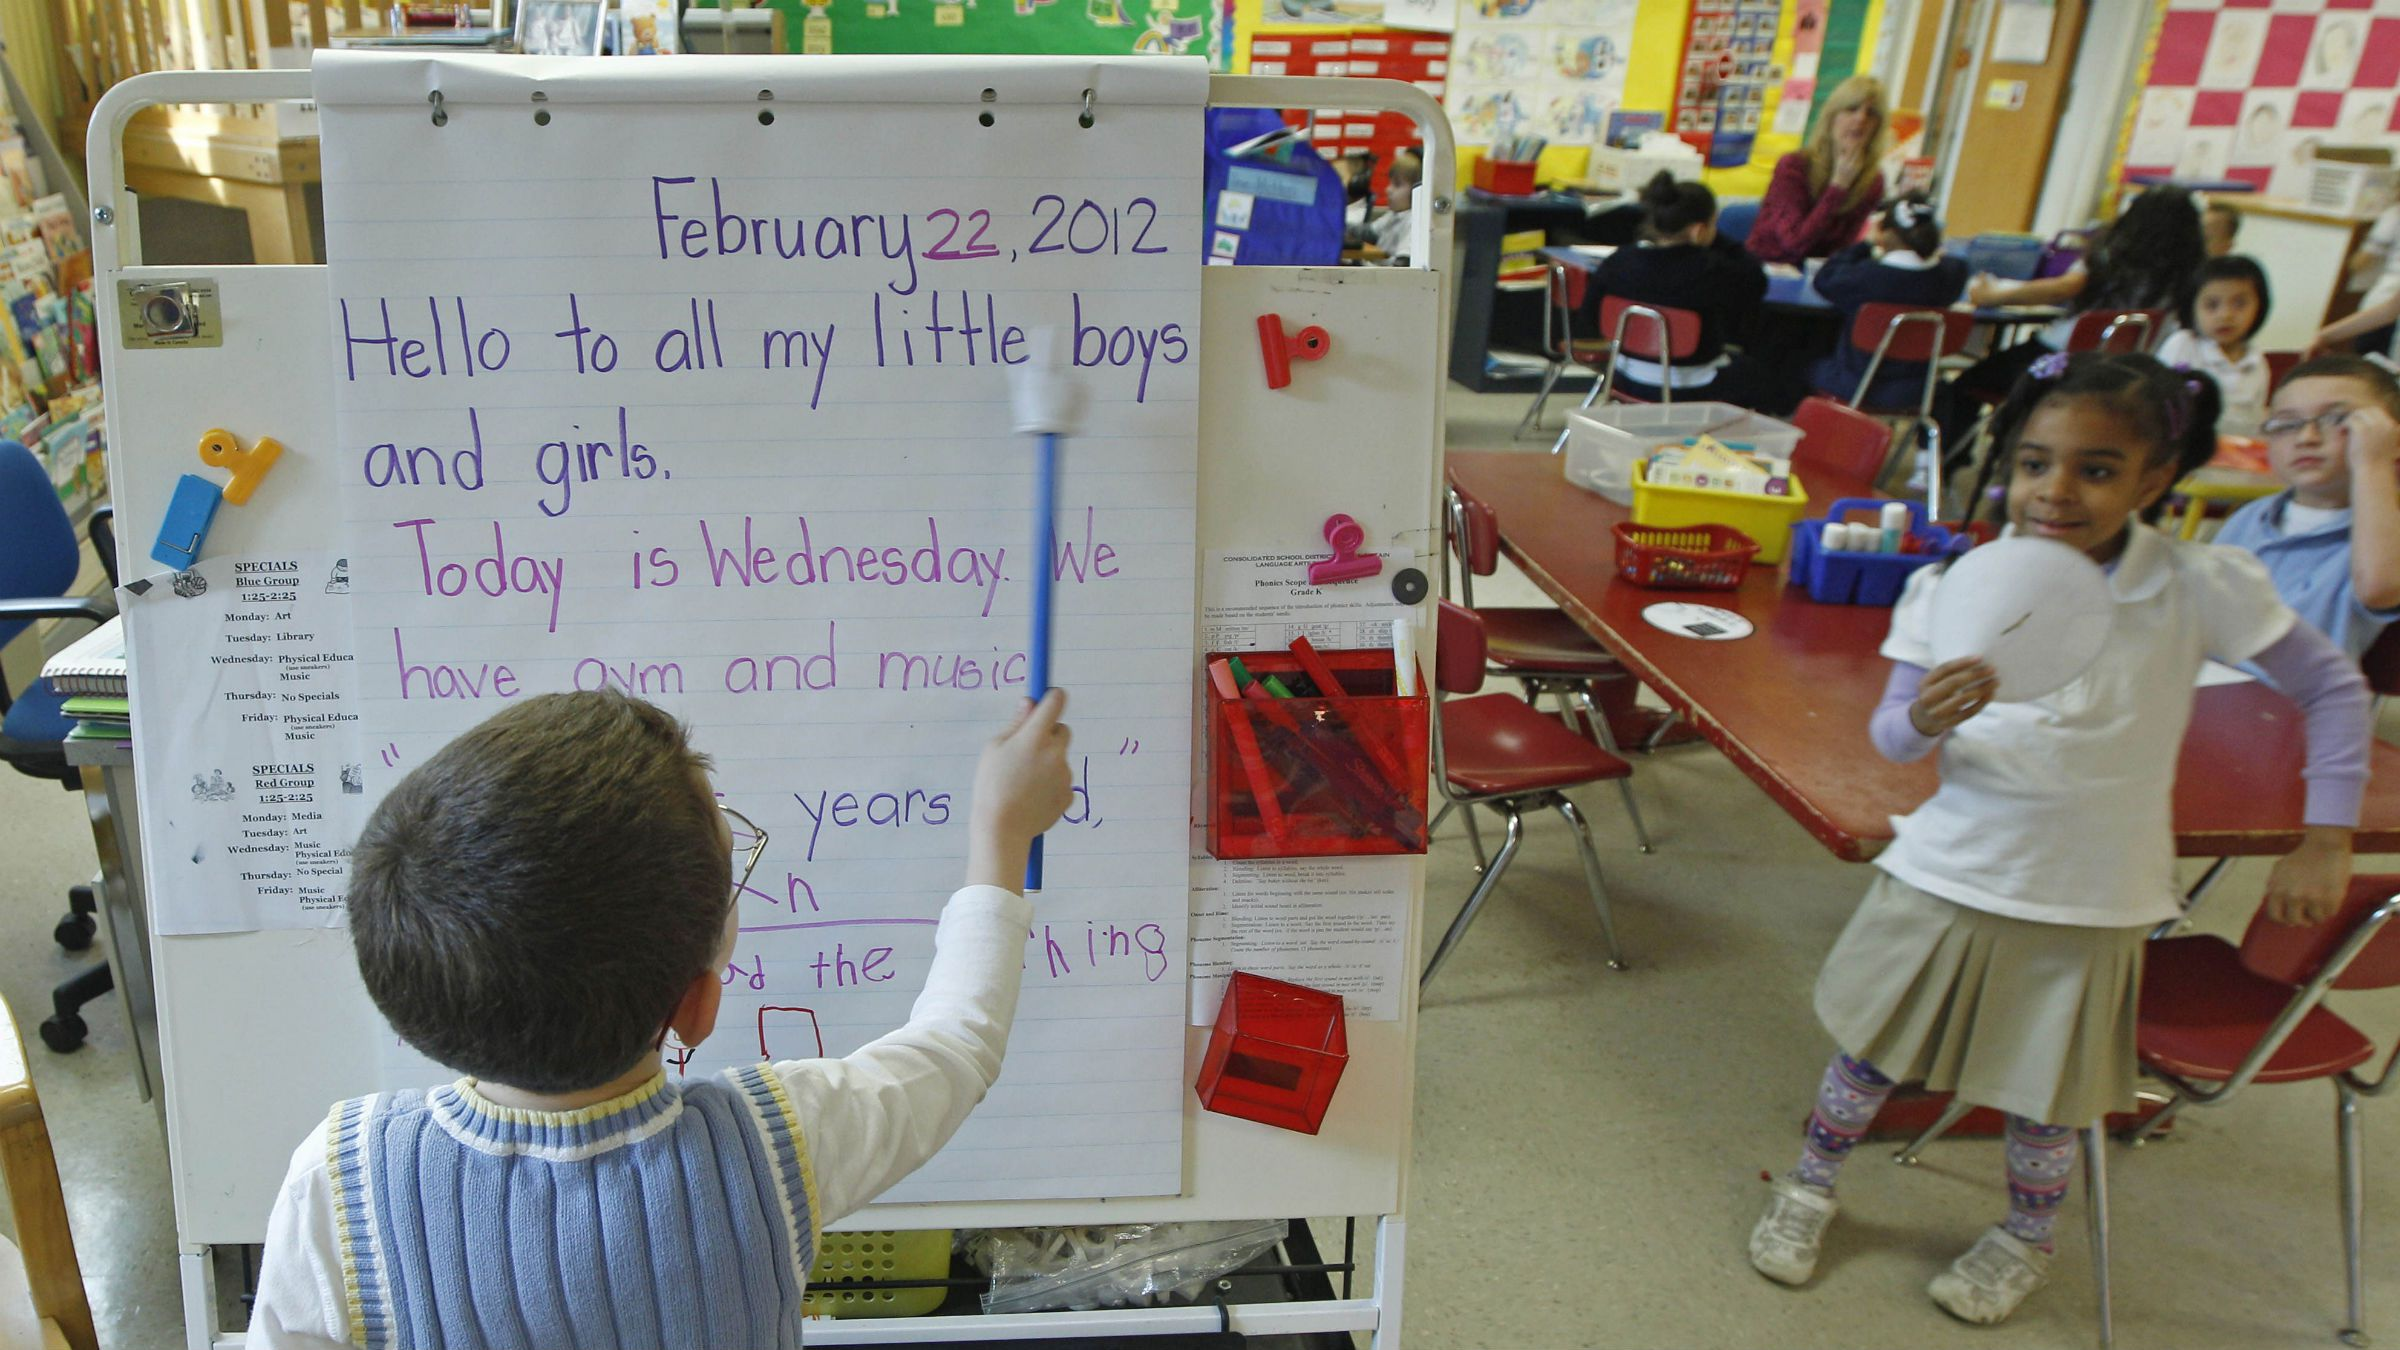 Ian Moore reads the daily message board in a kindergarten class at the Diloreto Magnet School in New Britain, Conn., Wednesday Feb. 22, 2012. As Connecticut lawmakers consider sweeping reforms intended to close the achievement gap between wealthy and poor school districts, another gap is growing: The disparity between communities that offer full-day kindergarten and those that don't. (AP Photo/Charles Krupa)